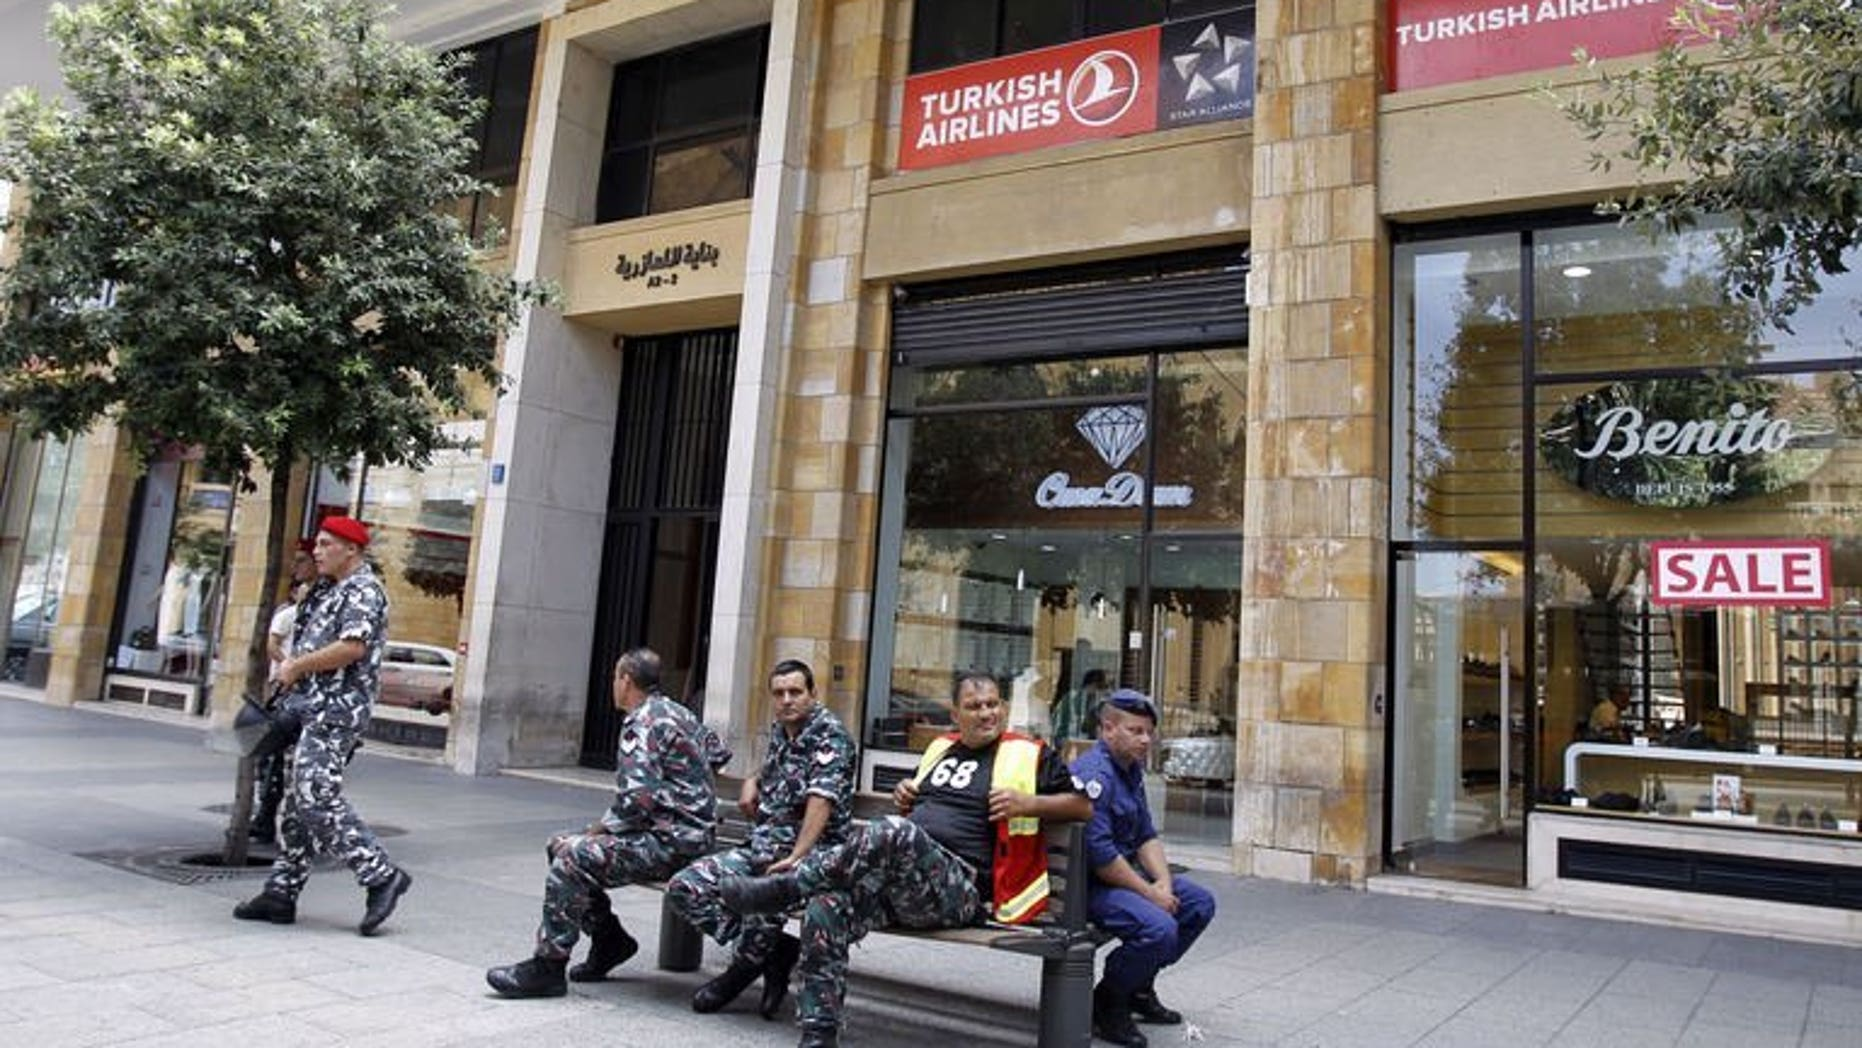 Members of the Lebanese internal security forces sit outside the Turkish Airlines offices in downtown Beirut on August 12, 2013. A Turkish pilot refused to fly a Beirut-bound plane from Istanbul in a show of protest against the kidnapping of two of his colleagues in Lebanon, local media reported Monday.